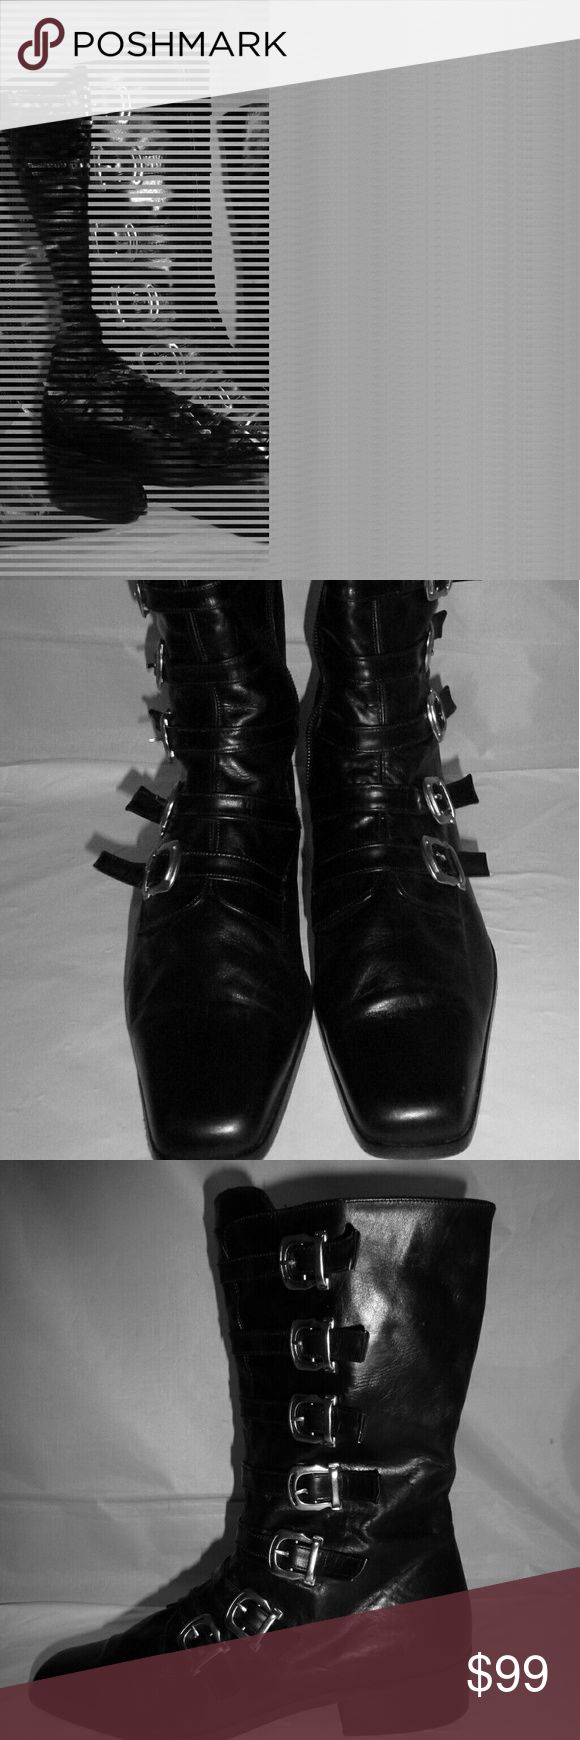 """Sacha London Black Leather Winklepickers The boots feature:  Side zipper - Silver tone hardware - Lightly padded inner sole  - Leather sole and upper   * * * Please notice: Sole width is only 3"""" = Narrow fit!! They will not and do not fit M/B size  Shaft height: 8 1/2"""" Heel height: 1"""" Sole width: 3""""  Thanks for looking! Sacha London Shoes Combat & Moto Boots"""